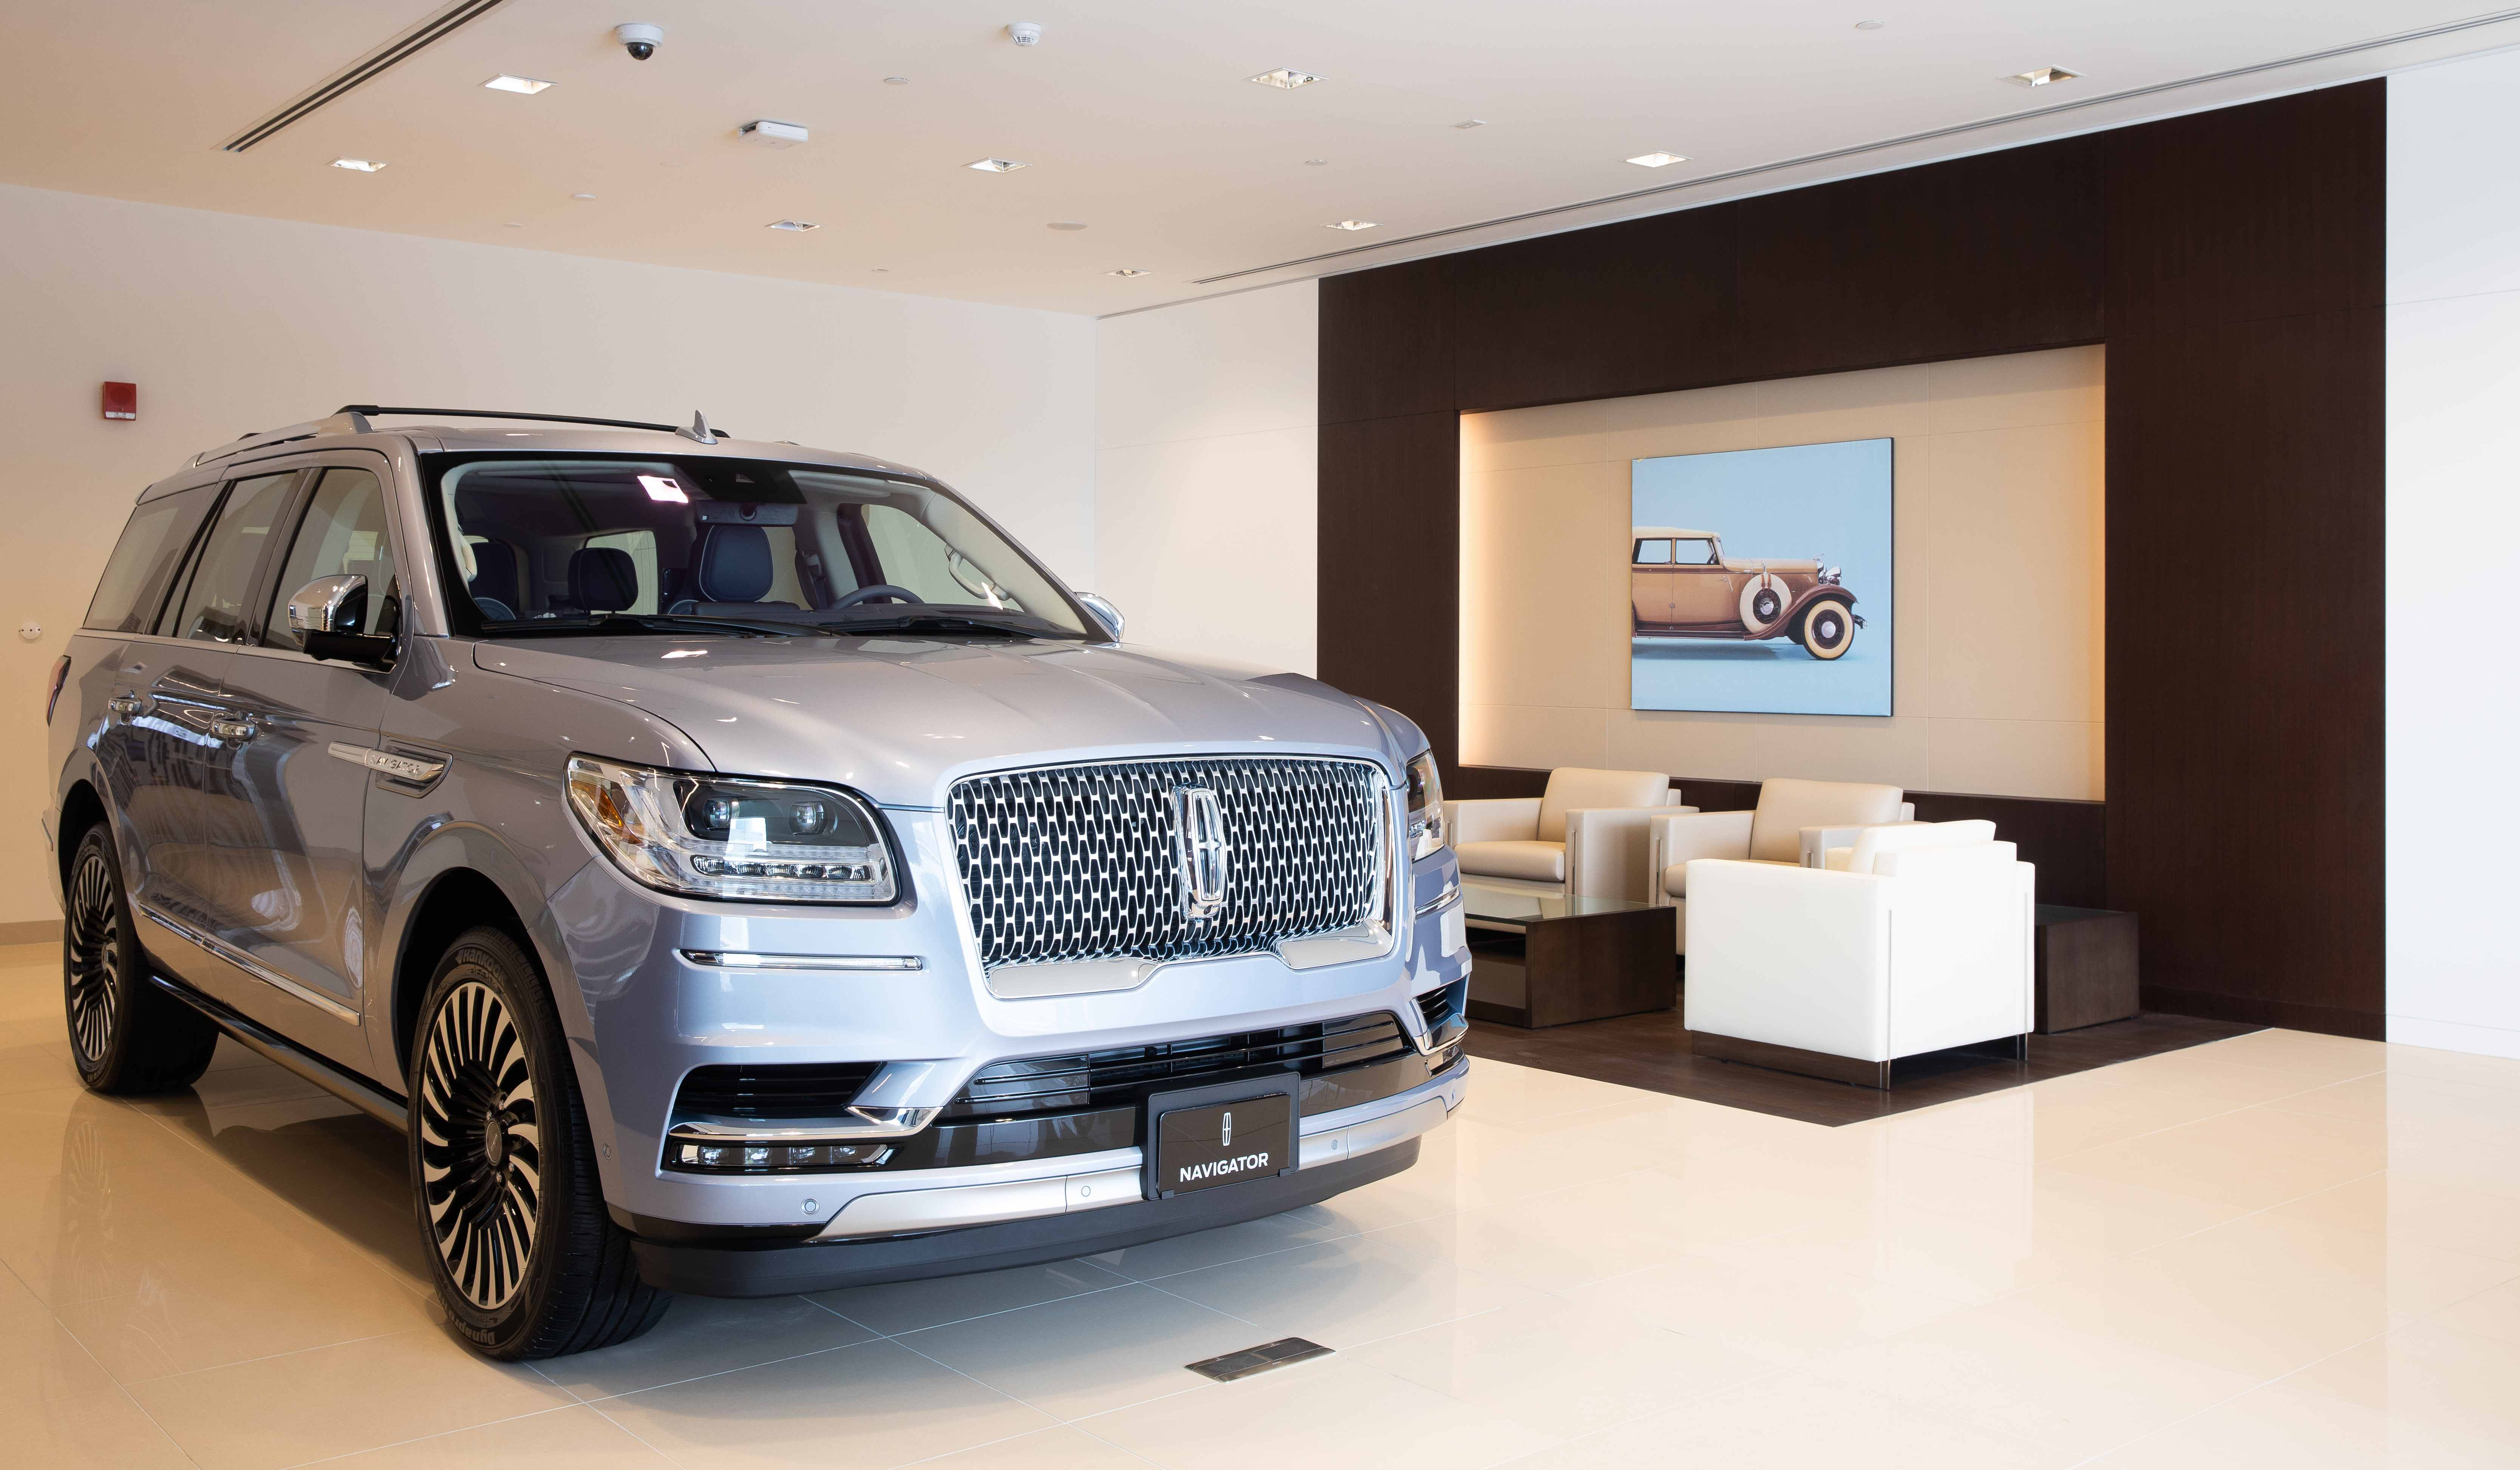 Lincoln's Middle East Sales Increase By 21% In The First Quarter of 2021